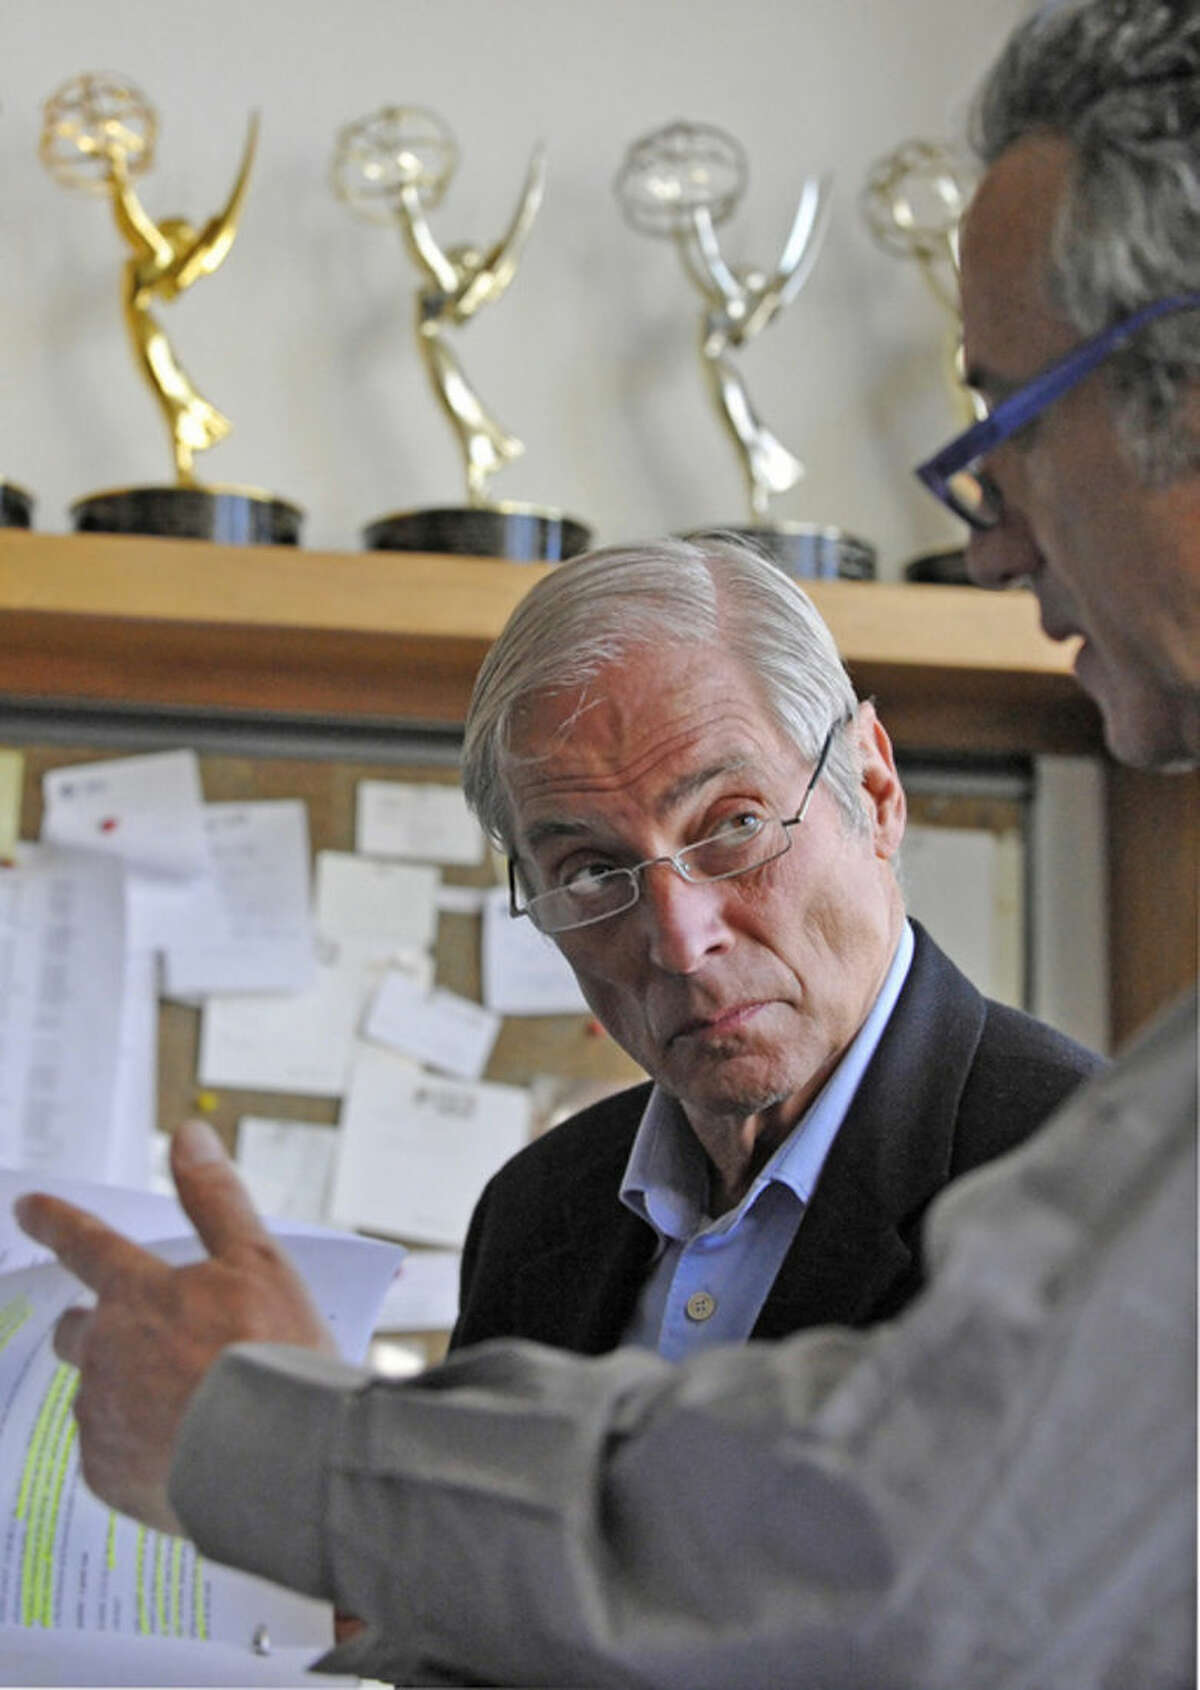 """In this March 24, 2010 photo released by CBS, """"60 Minutes"""" correspondent Bob Simon, speaks with a news producer at the CBS Broadcast Center in New York. CBS says Simon was killed in a car crash on Wednesday, Feb. 11, 2015, in Manhattan. Police say a town car in which he was a passenger hit another car. He was 73. (AP Photo/CBS, John Paul Filo)"""